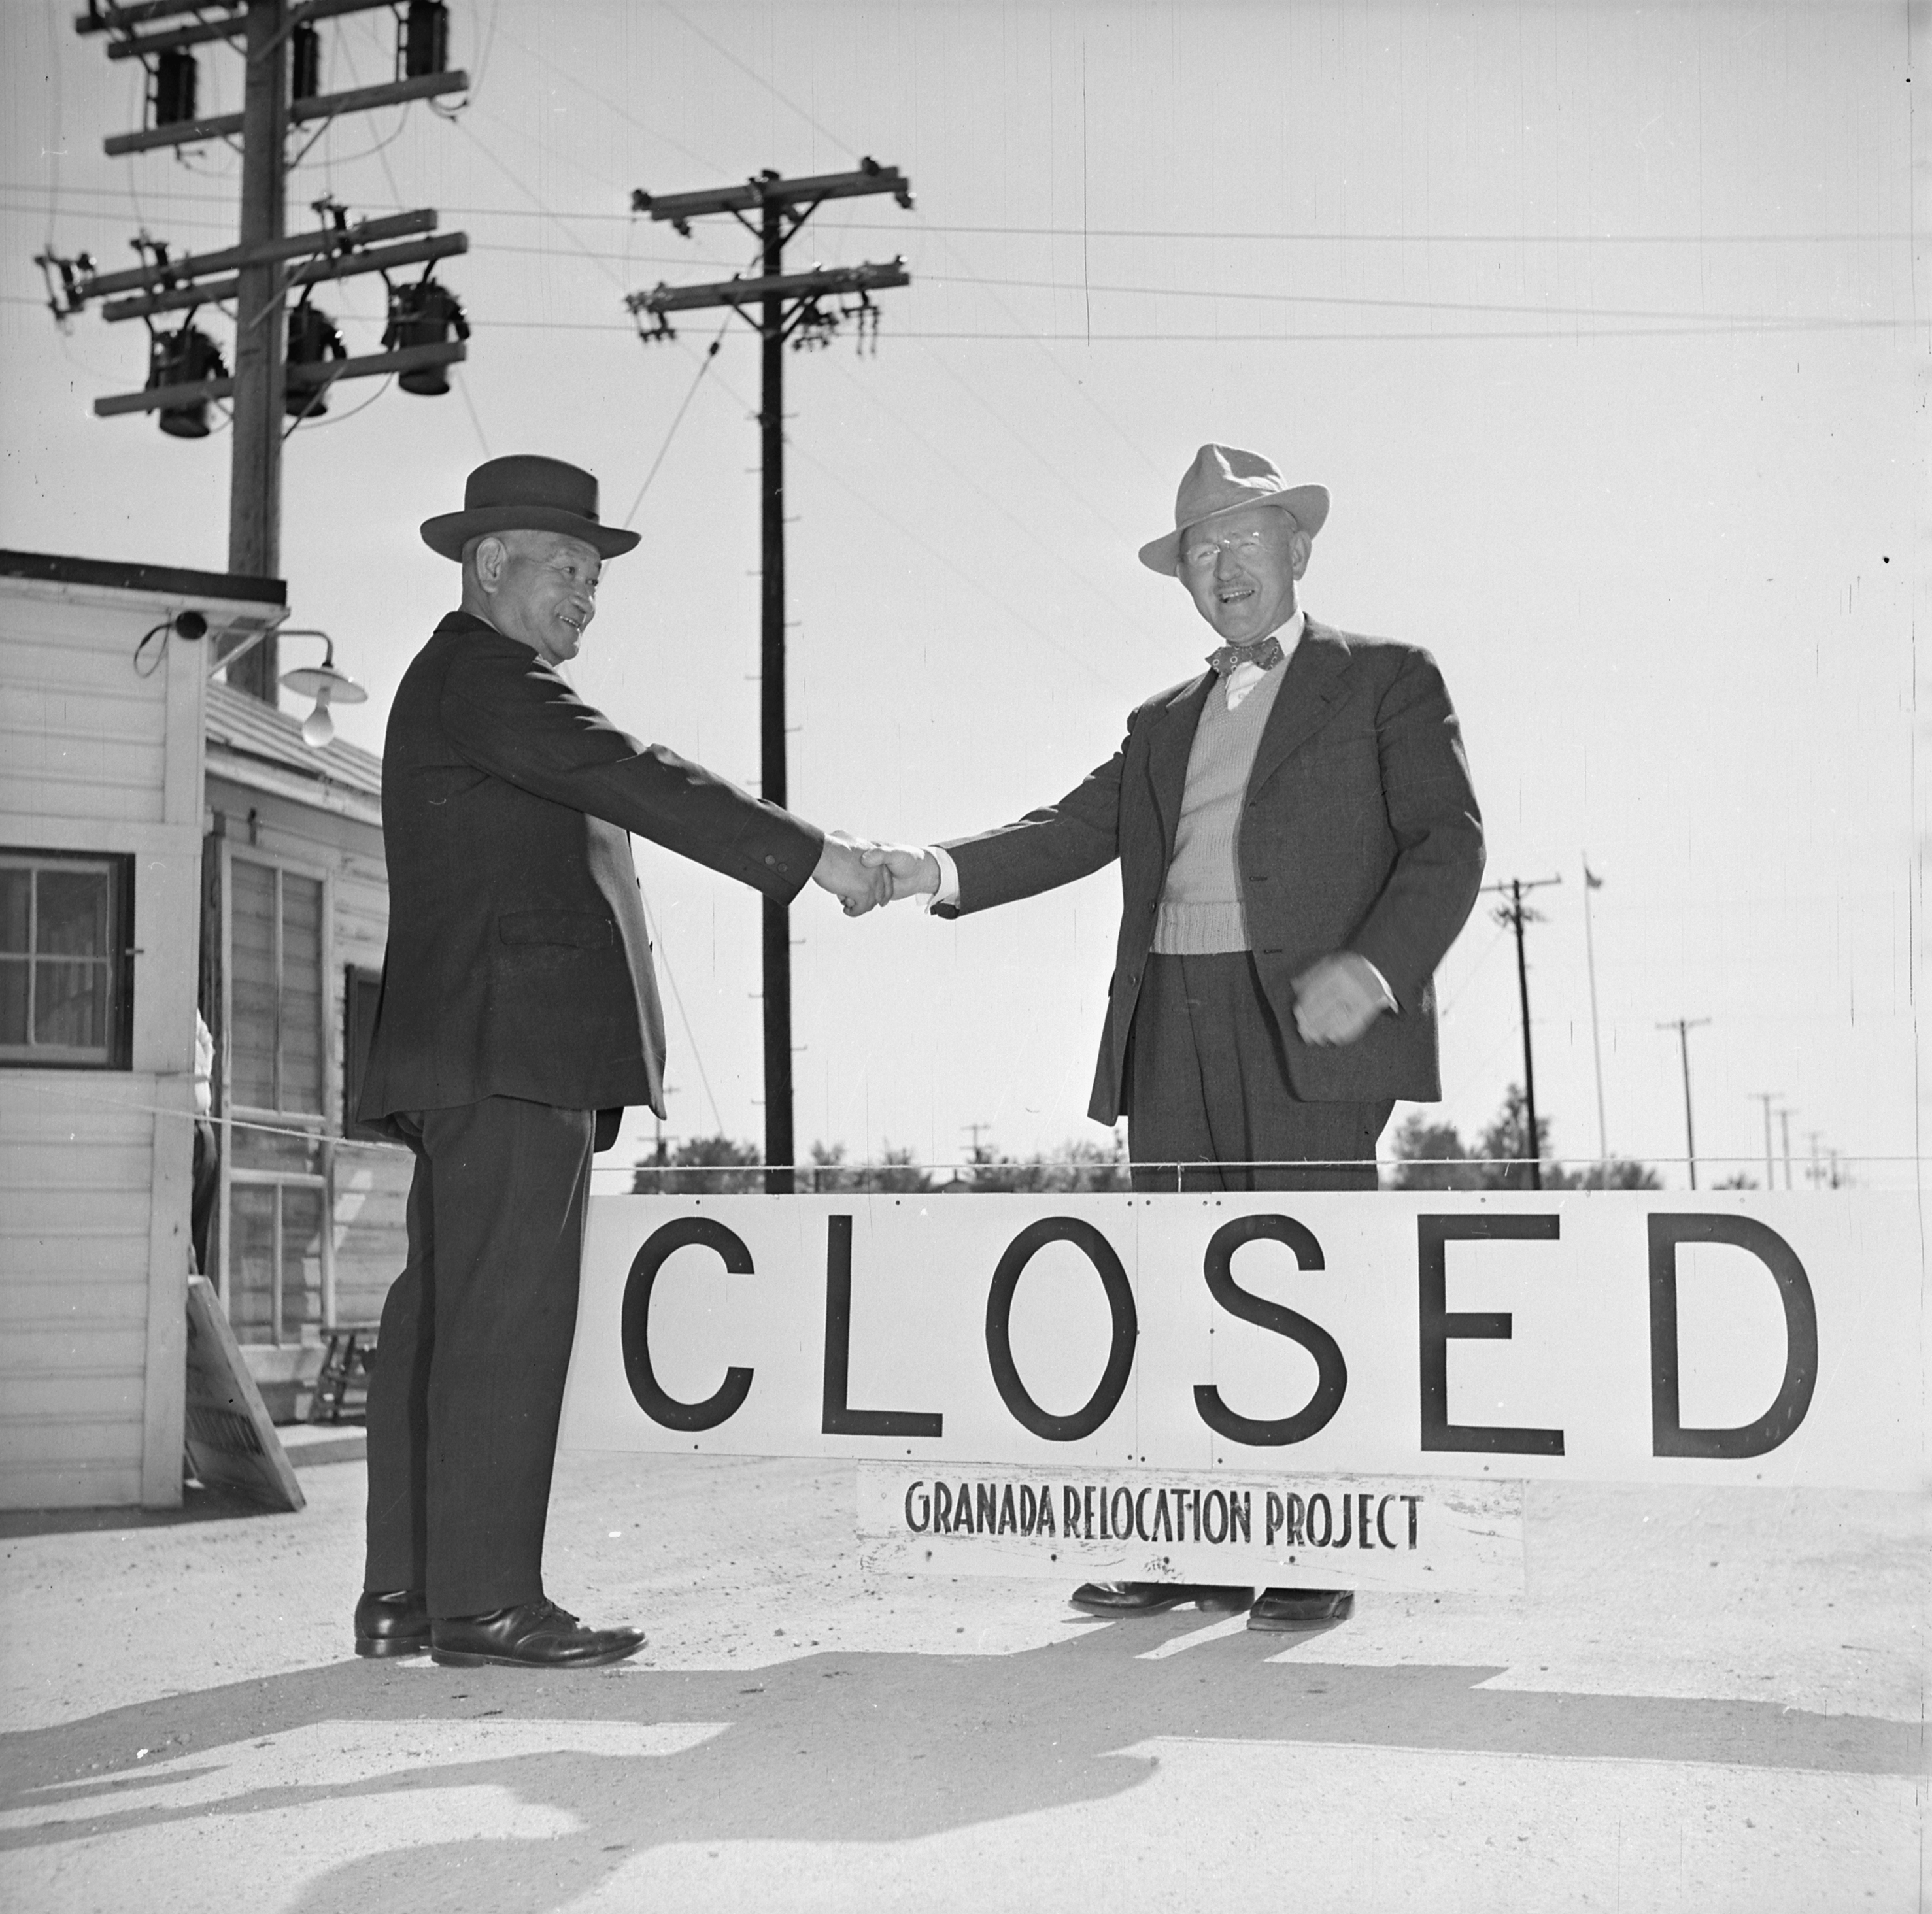 """<p>A public domain photo taken by the Department of the Interior. The original caption reads:Shuichi Yamamoto, last Amache evacuee to leave the Granada Project Relocation Center, says """"Goodbye"""" to Project Director James G. Lindley, as War Relocation Authority camp is officially closed October 15, 1945. Mr. Yamamoto, 65 years of age, is returning to his former home in Marysville, California.</p>"""